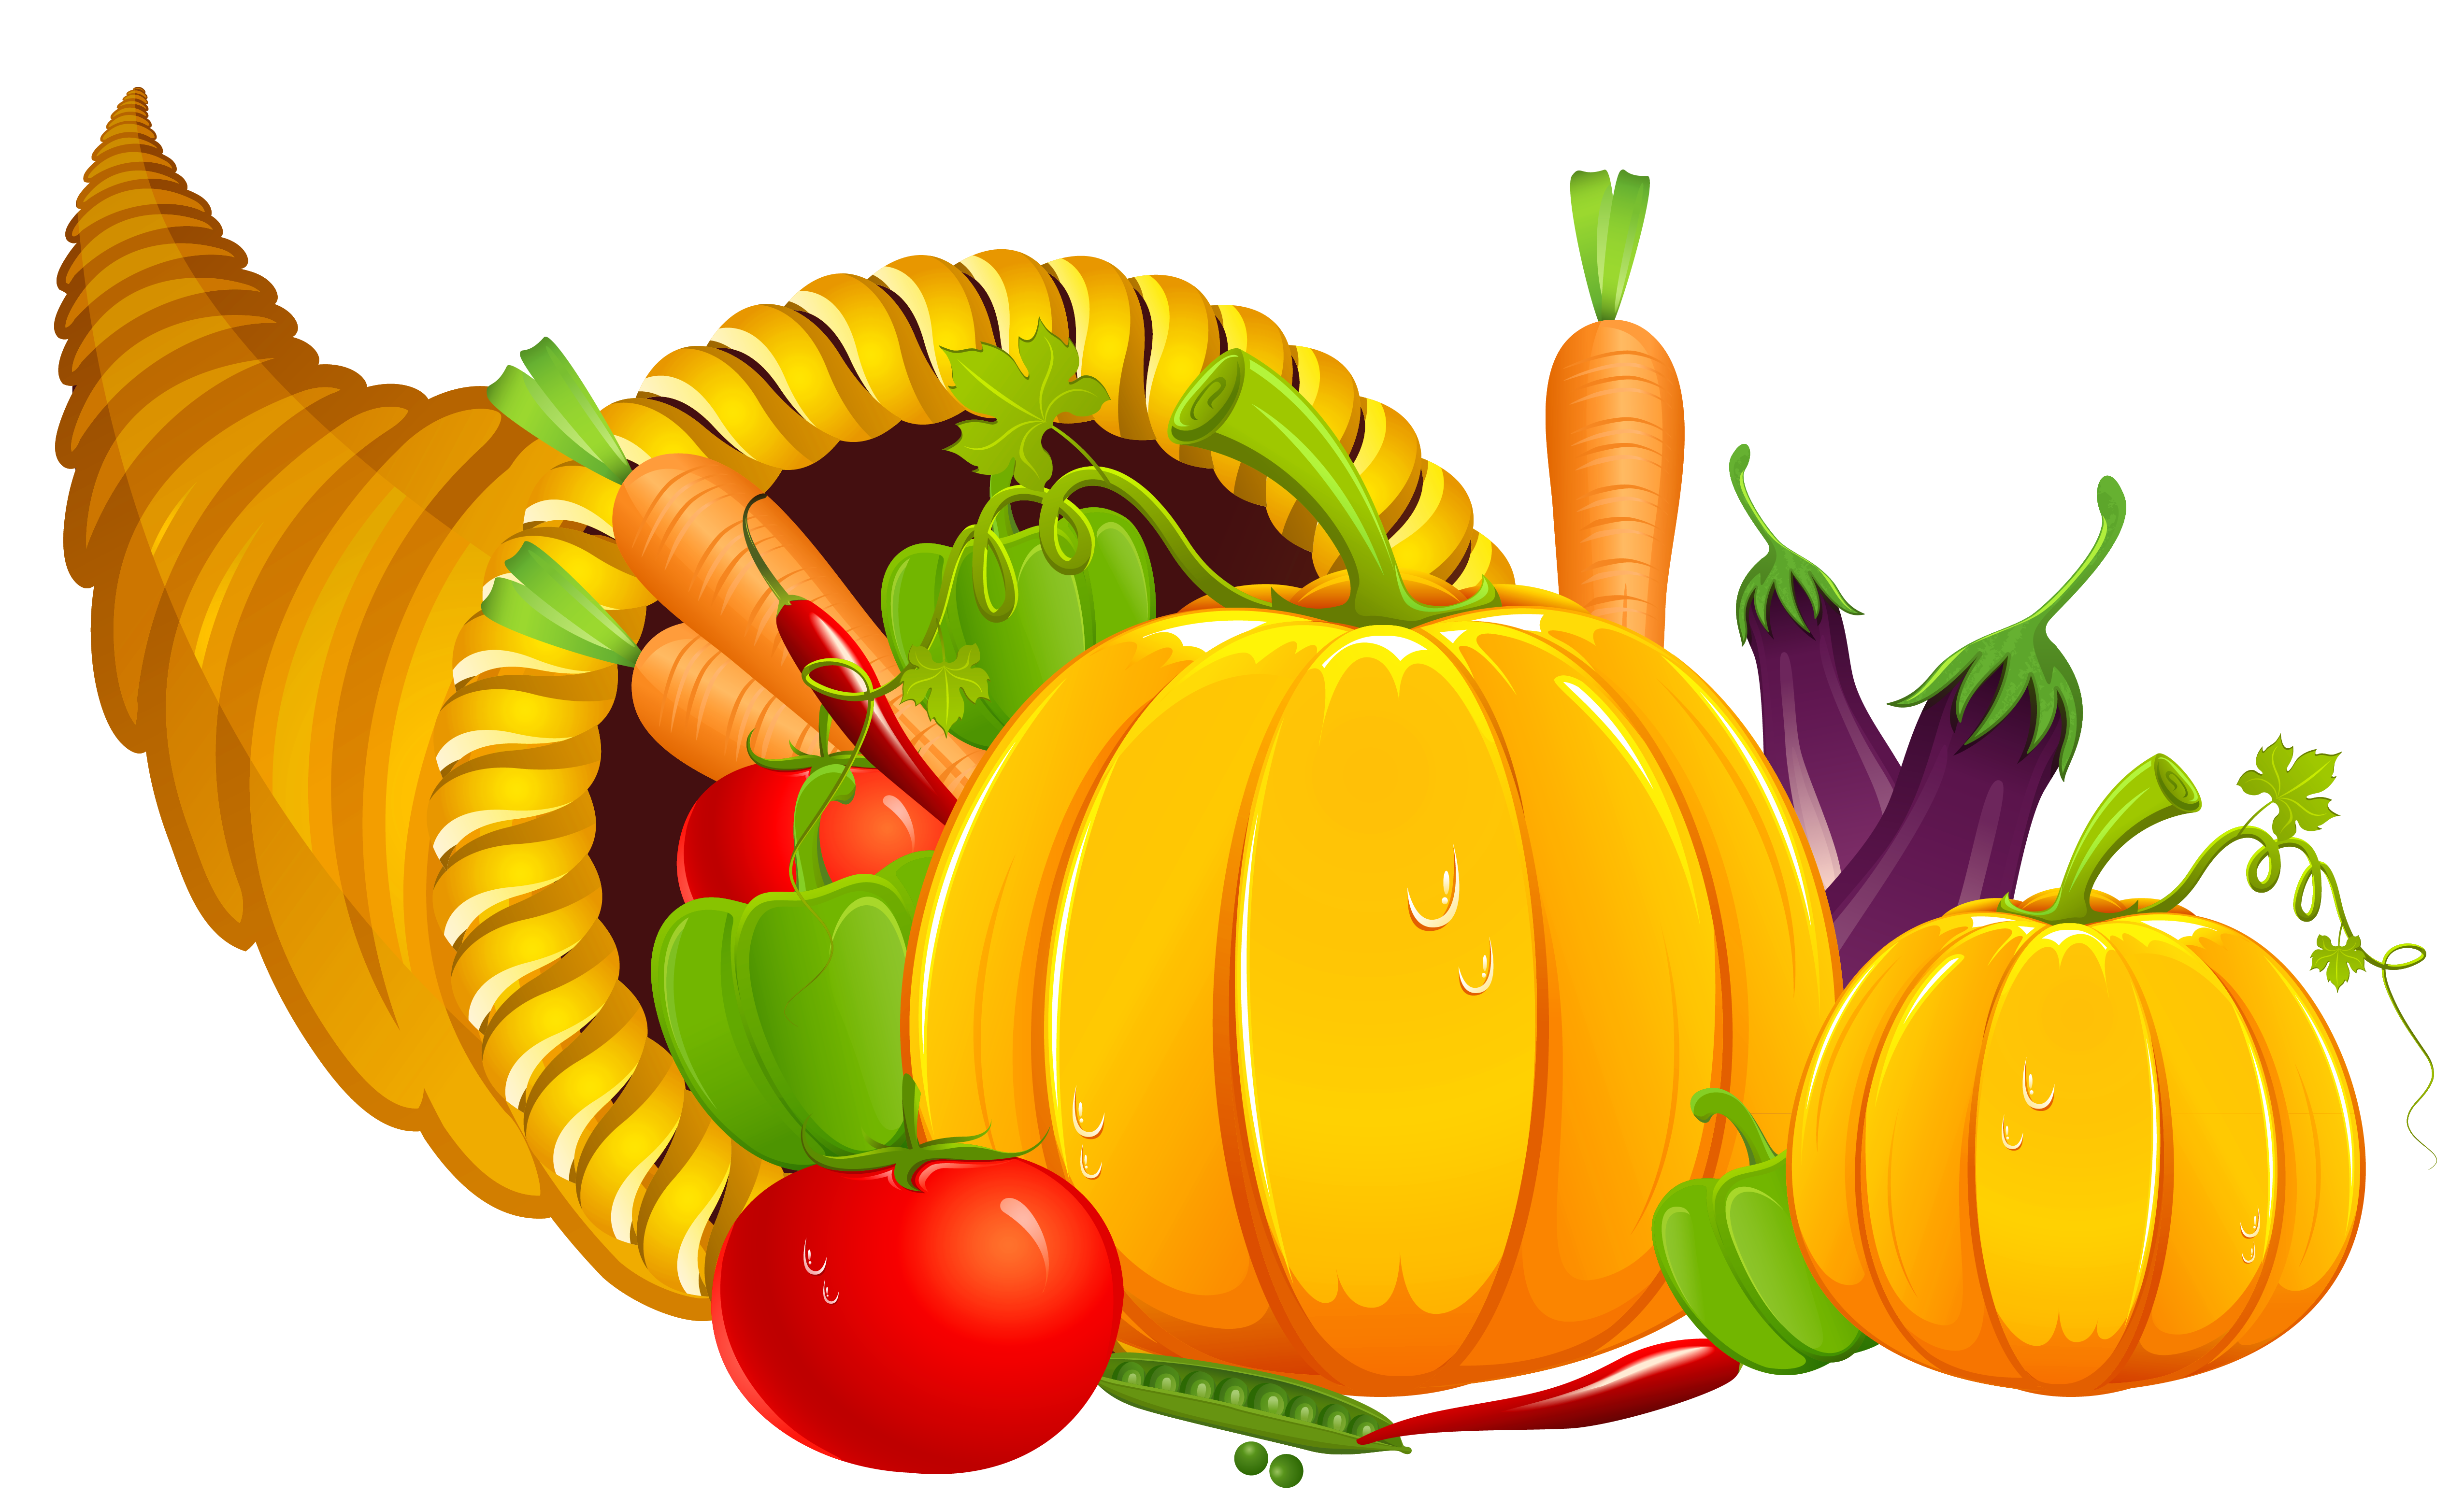 thanksgiving clipart at getdrawings com free for personal use rh getdrawings com free thanksgiving clip art to copy free thanksgiving clip art images